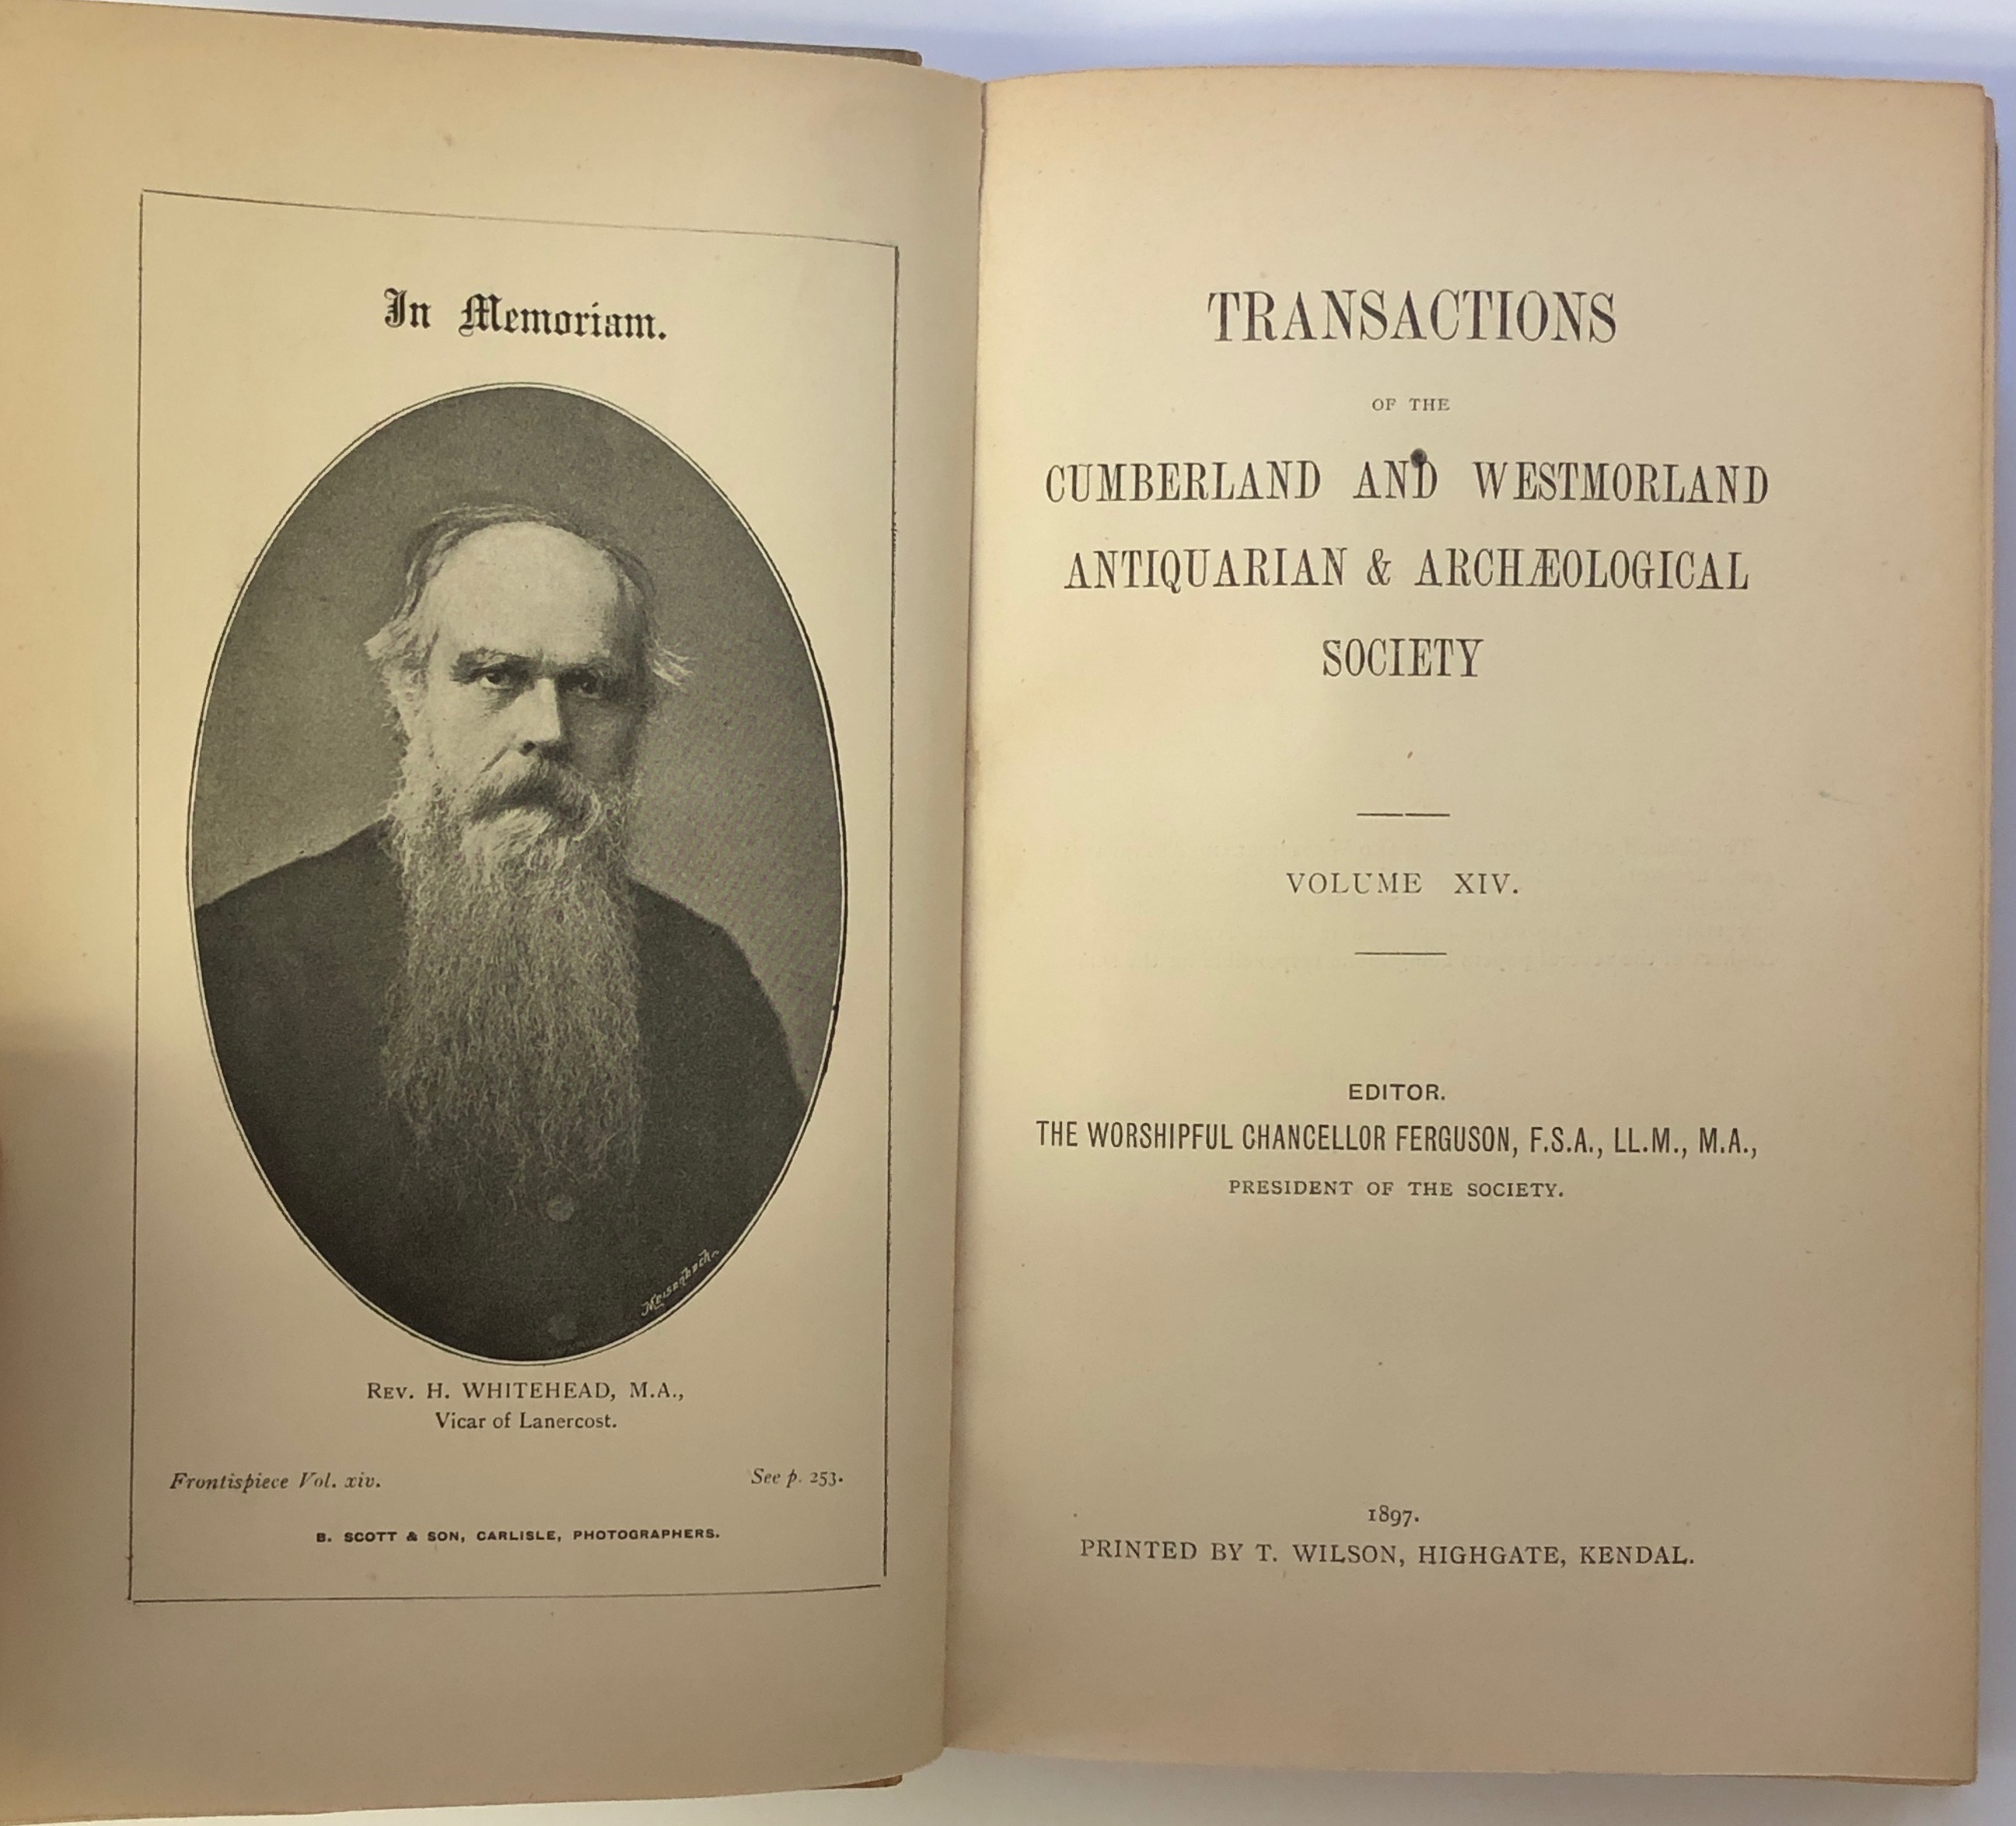 Transactions of the Cumberland and Westmorland Antiquarian & Archaeological Society. Volume XIV.